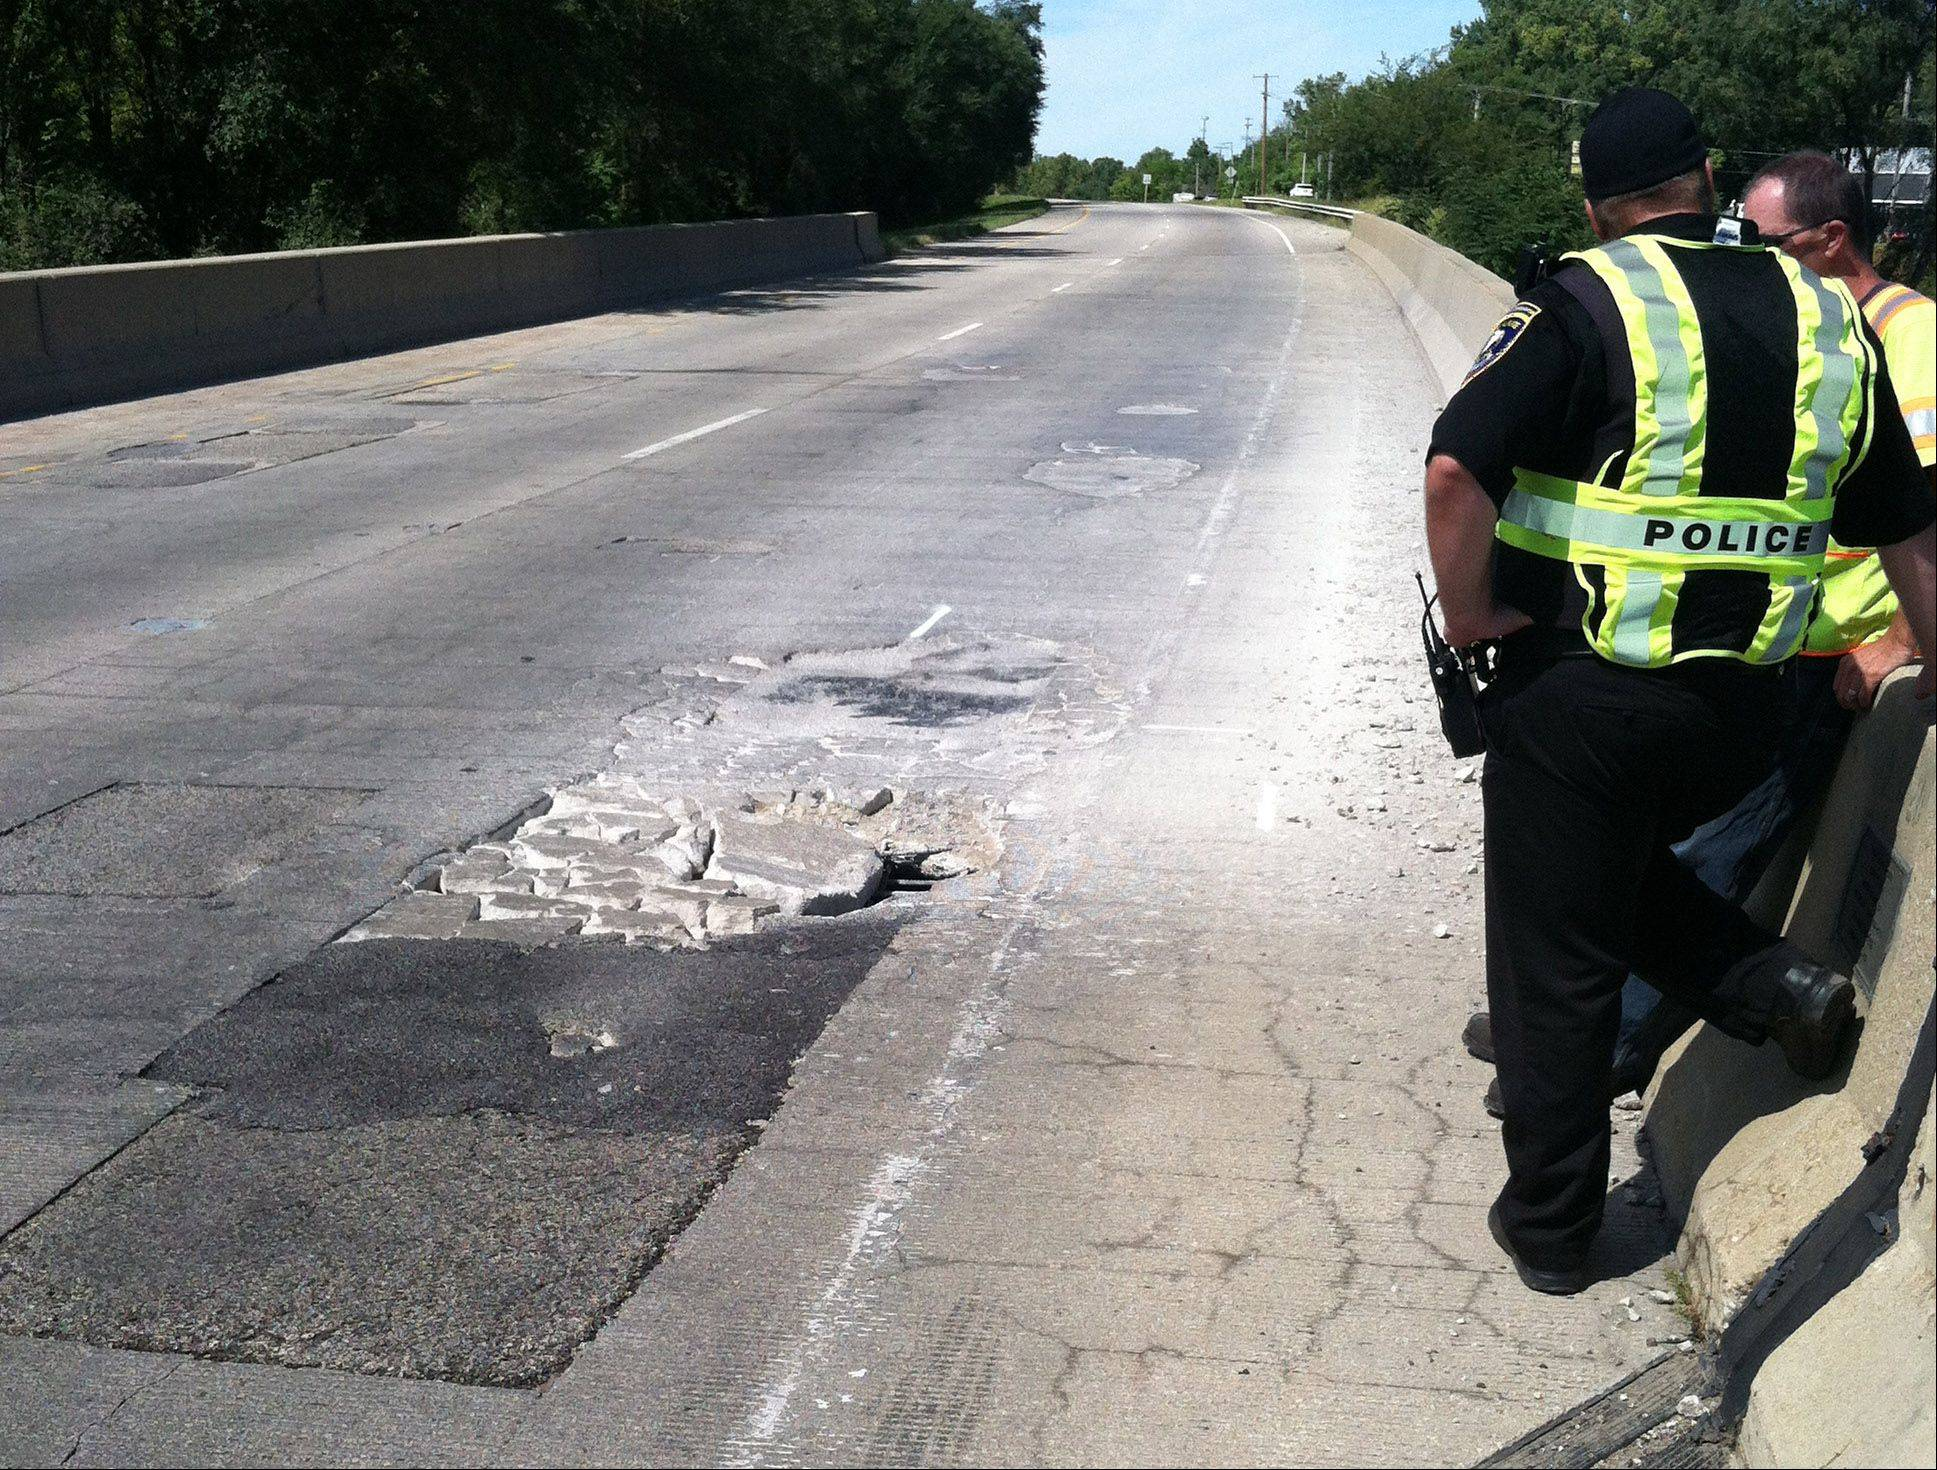 Northbound lanes of Route 12 at the Route 59 intersection is closed in Fox Lake due to a large hole in the road.